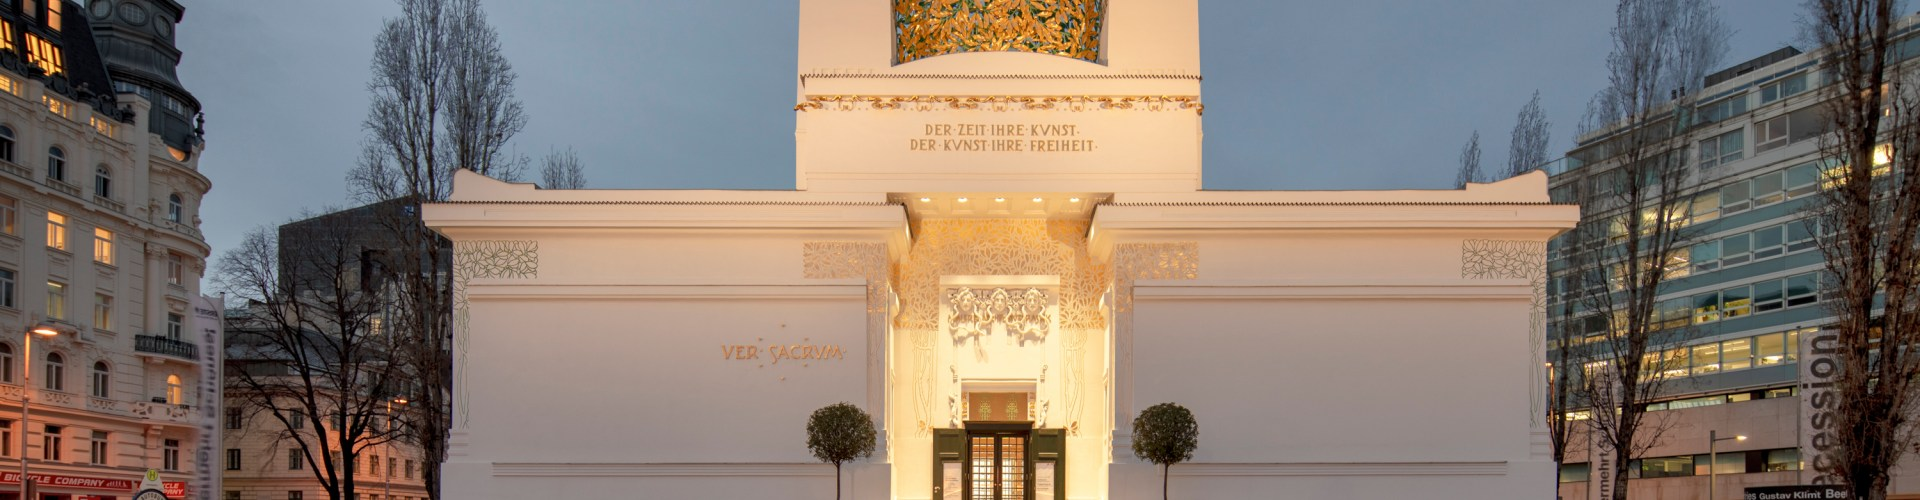 Zumtobel's Tunable White LED Brings New Life To Vienna's Secession